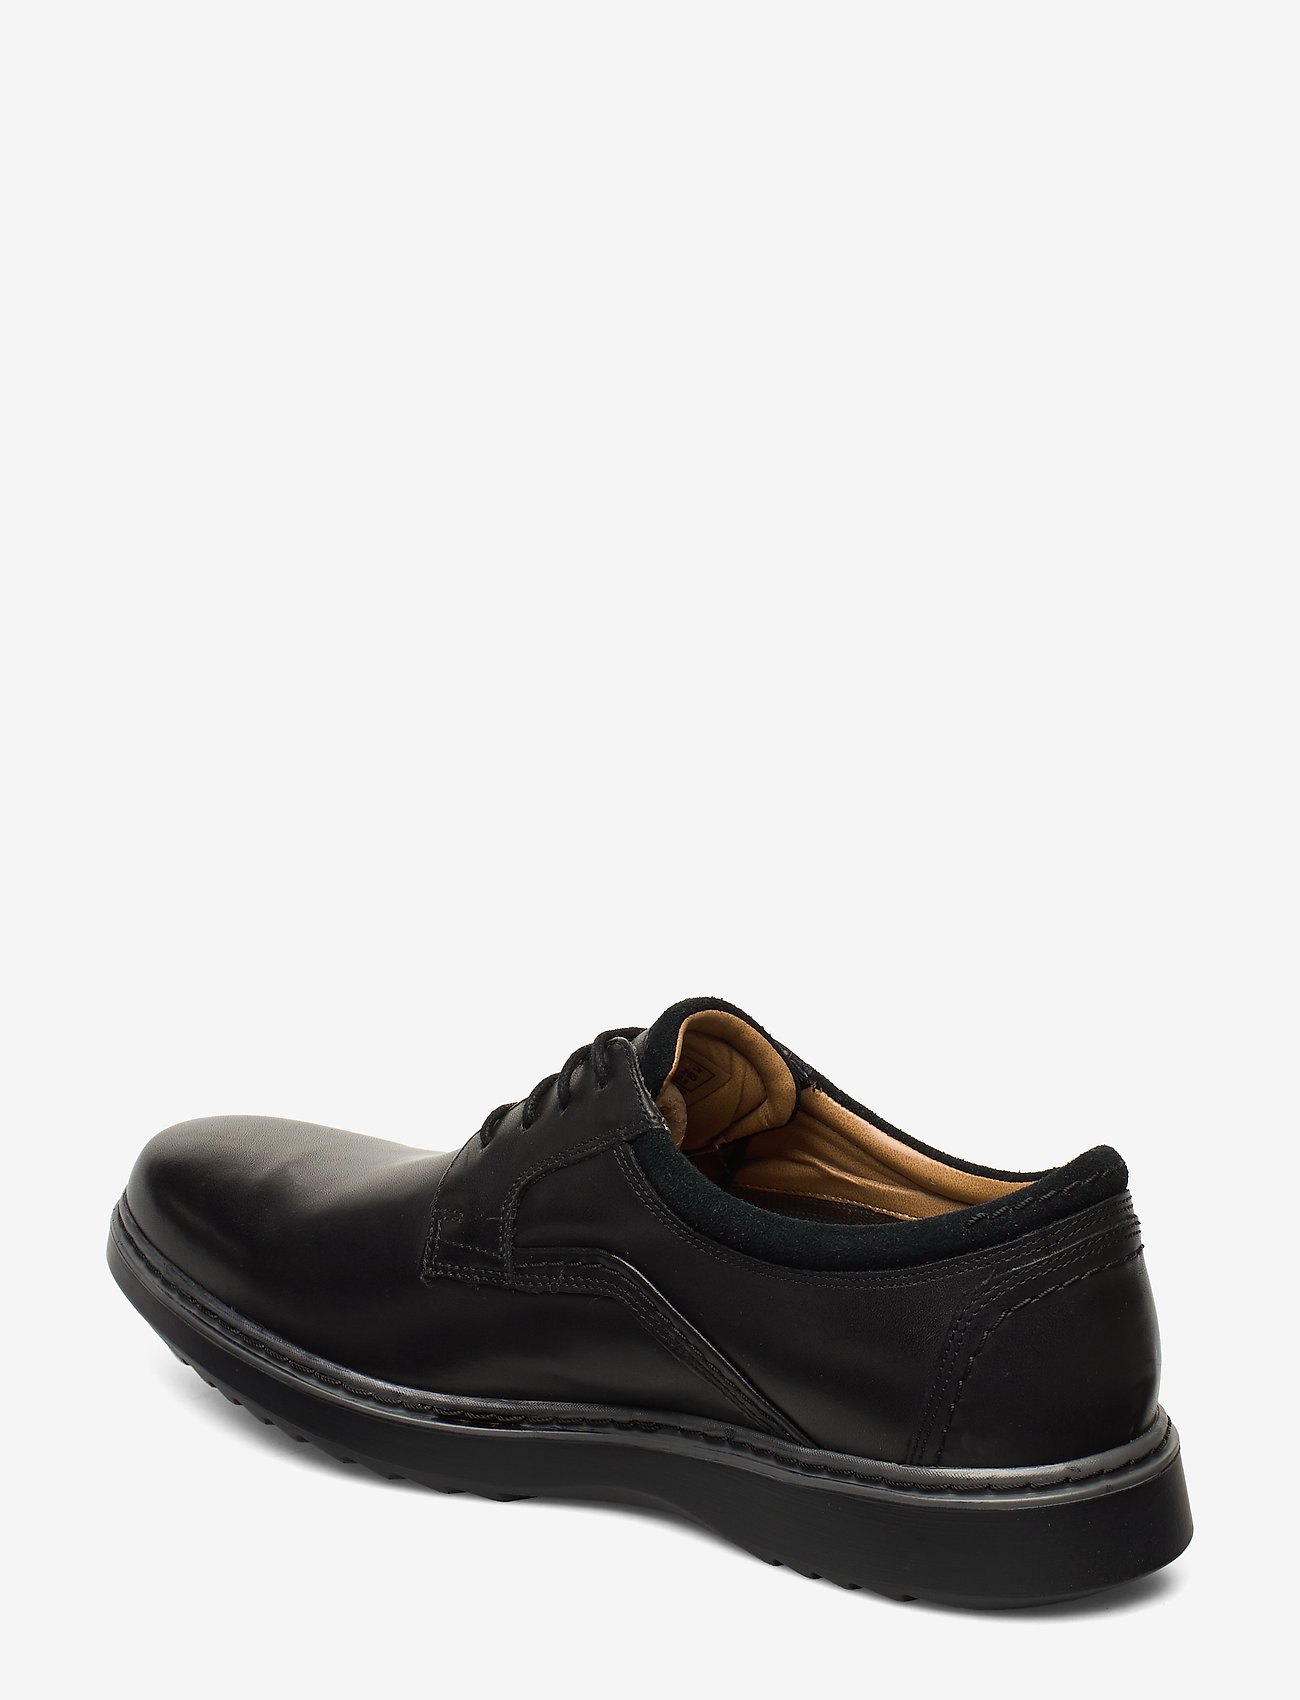 Un Geo Lacegtx (Black Leather) - Clarks